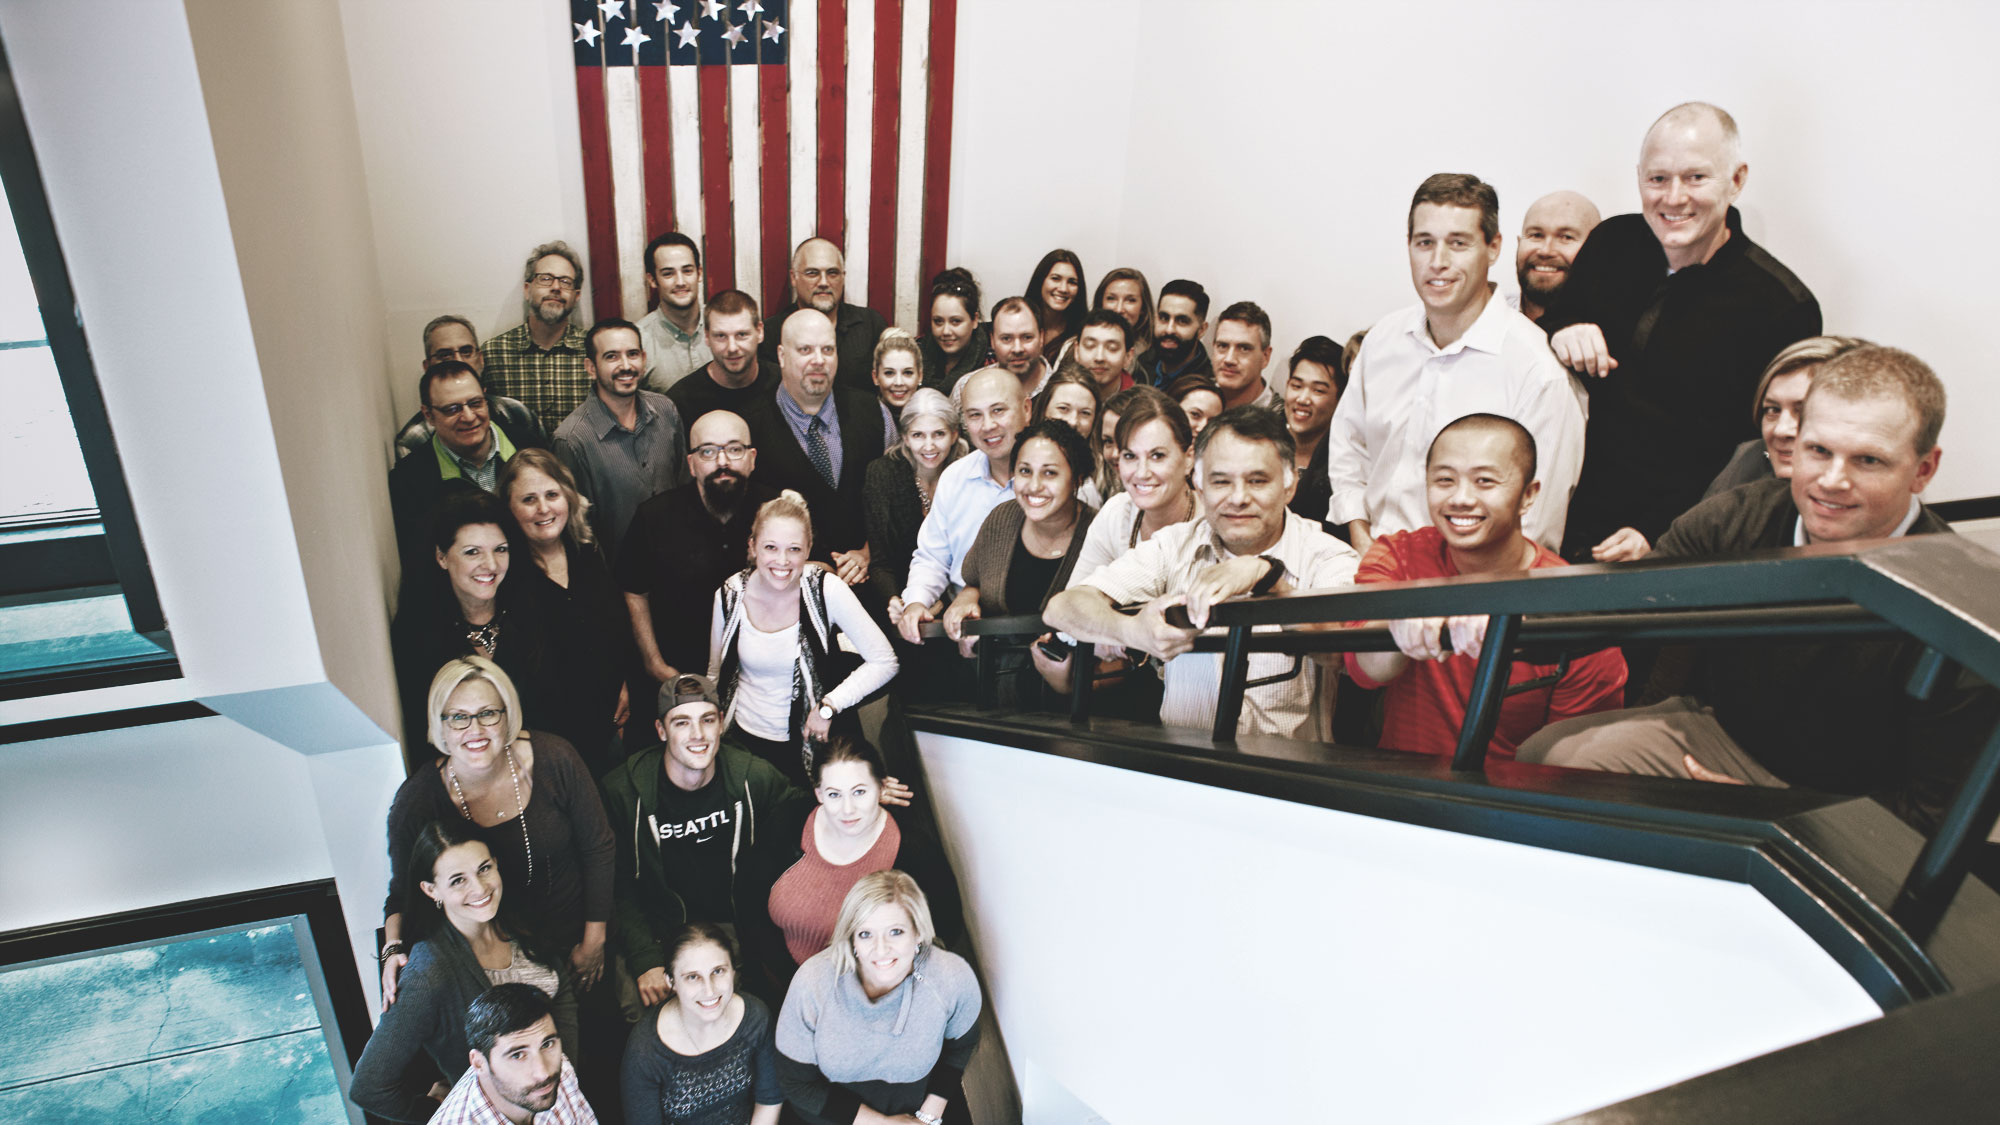 Launch employees standing in front of the American flag displayed in the Launch office